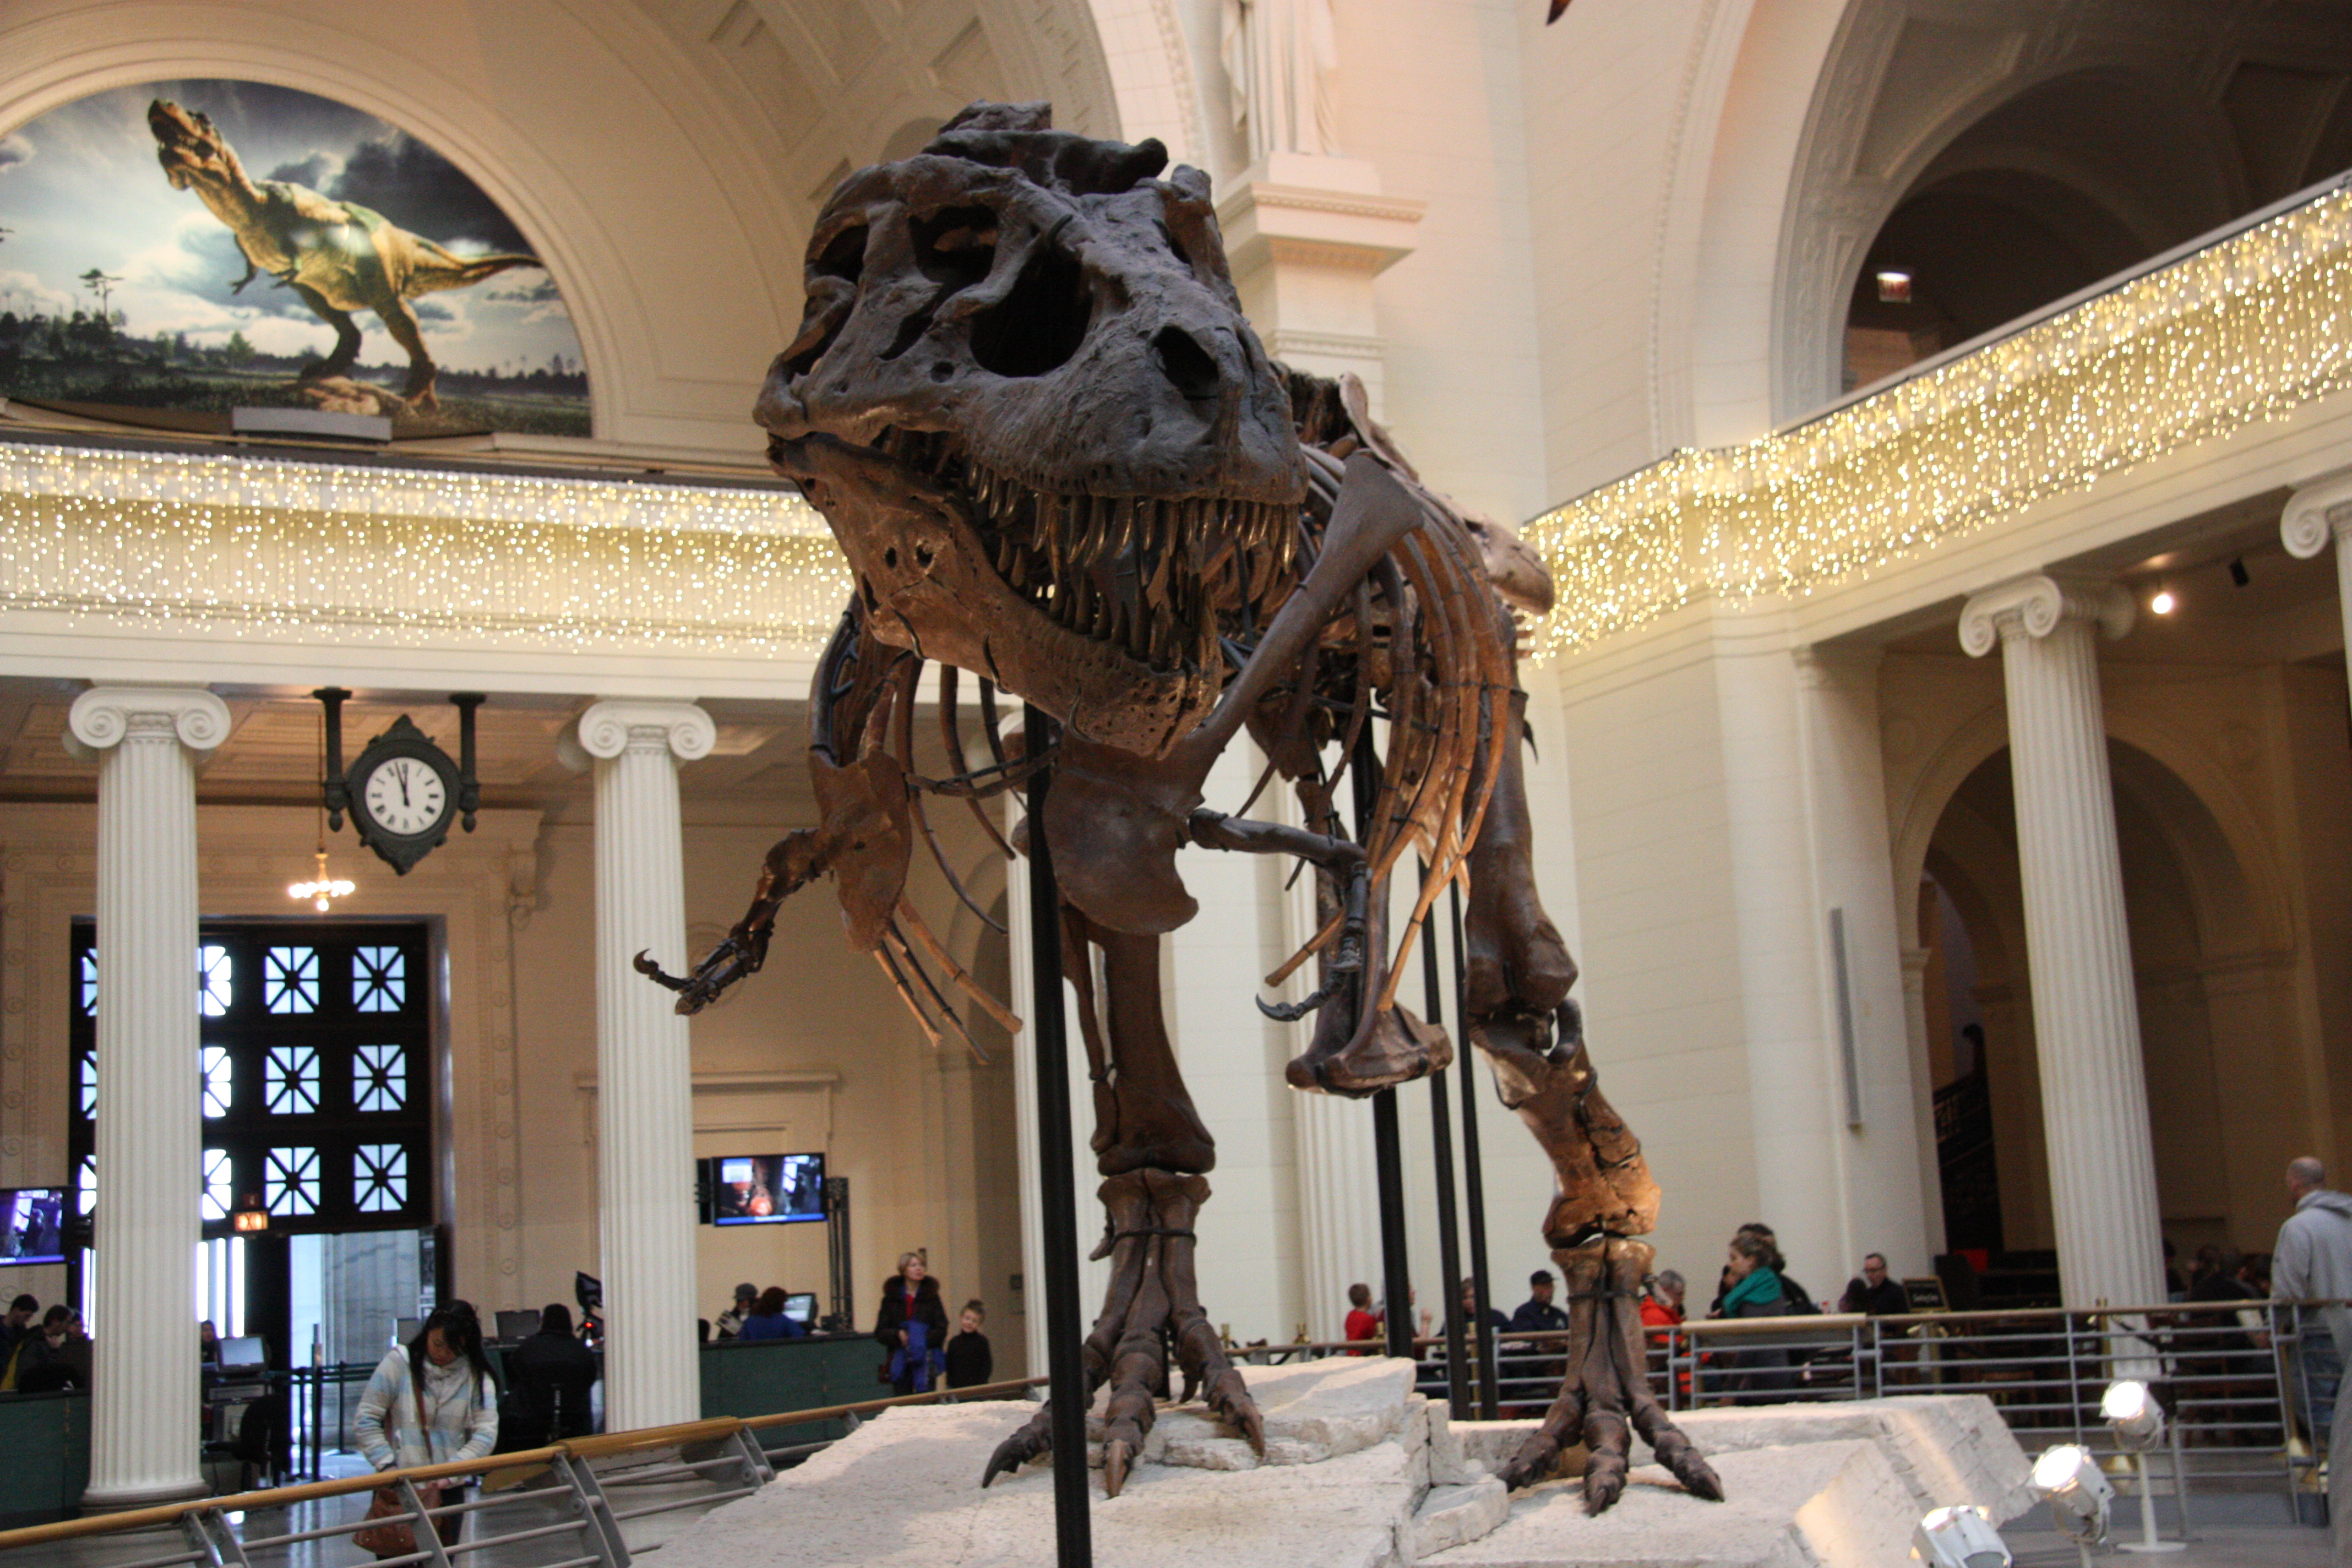 Sue the Tyrannosaurus rex at the Field Museum